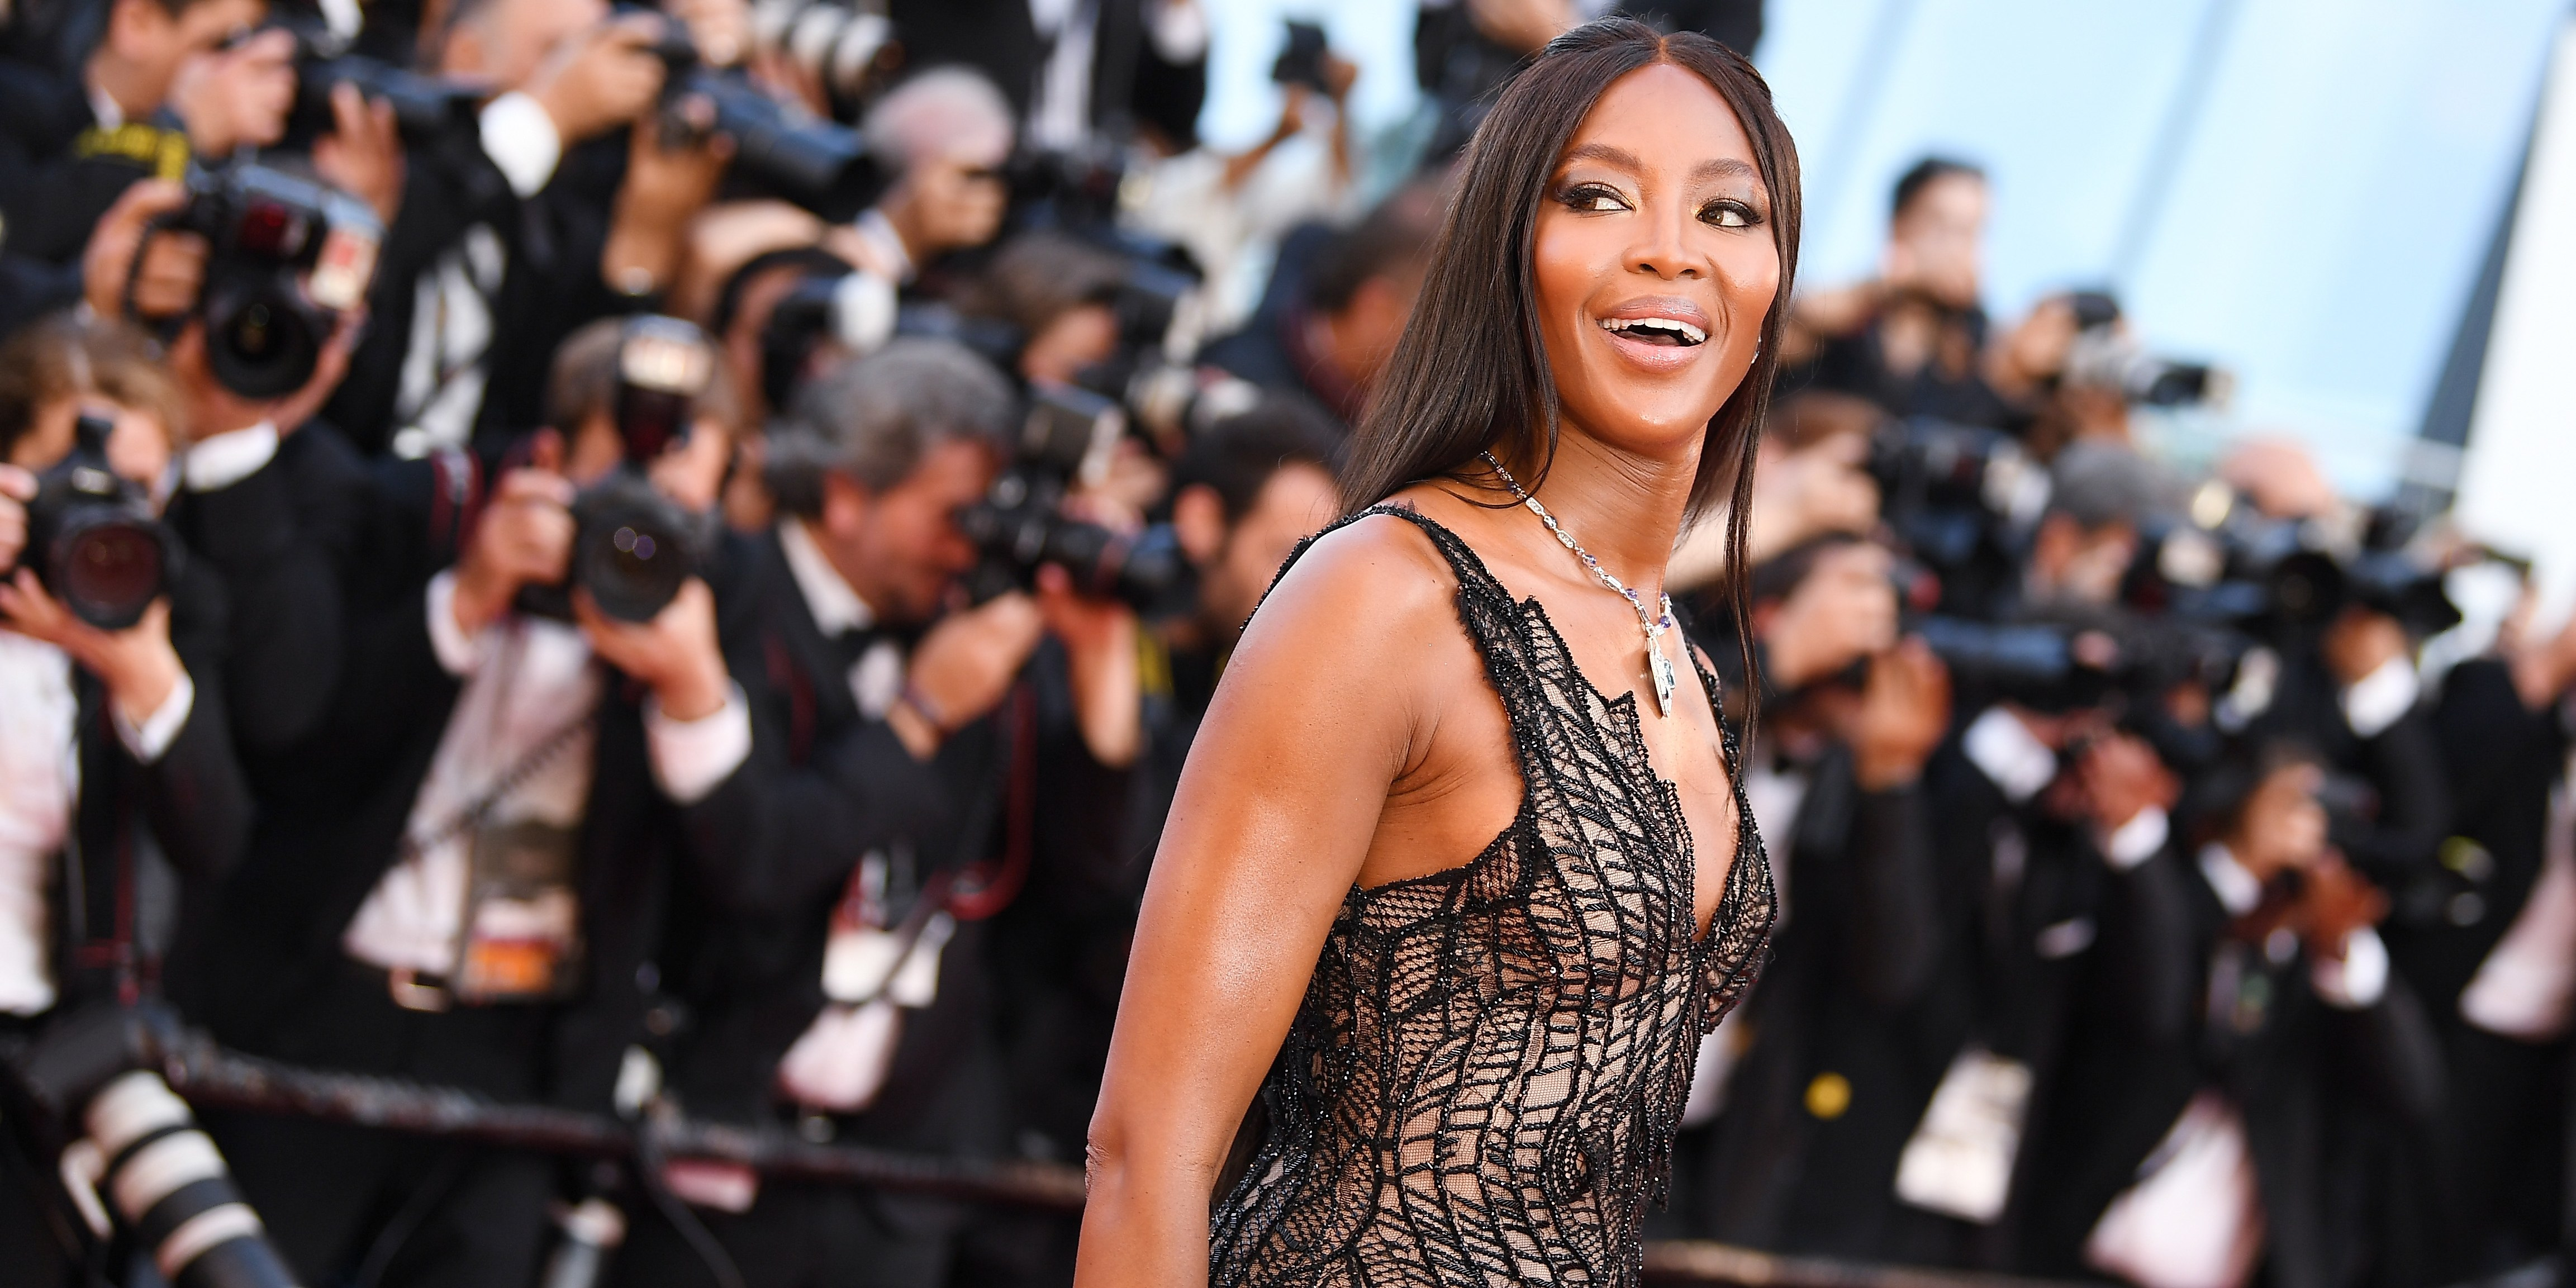 Naomi Campbell Cannes Film Festival Wallpapers - Naomi Campbell Cannes Film Festival Wallpapers